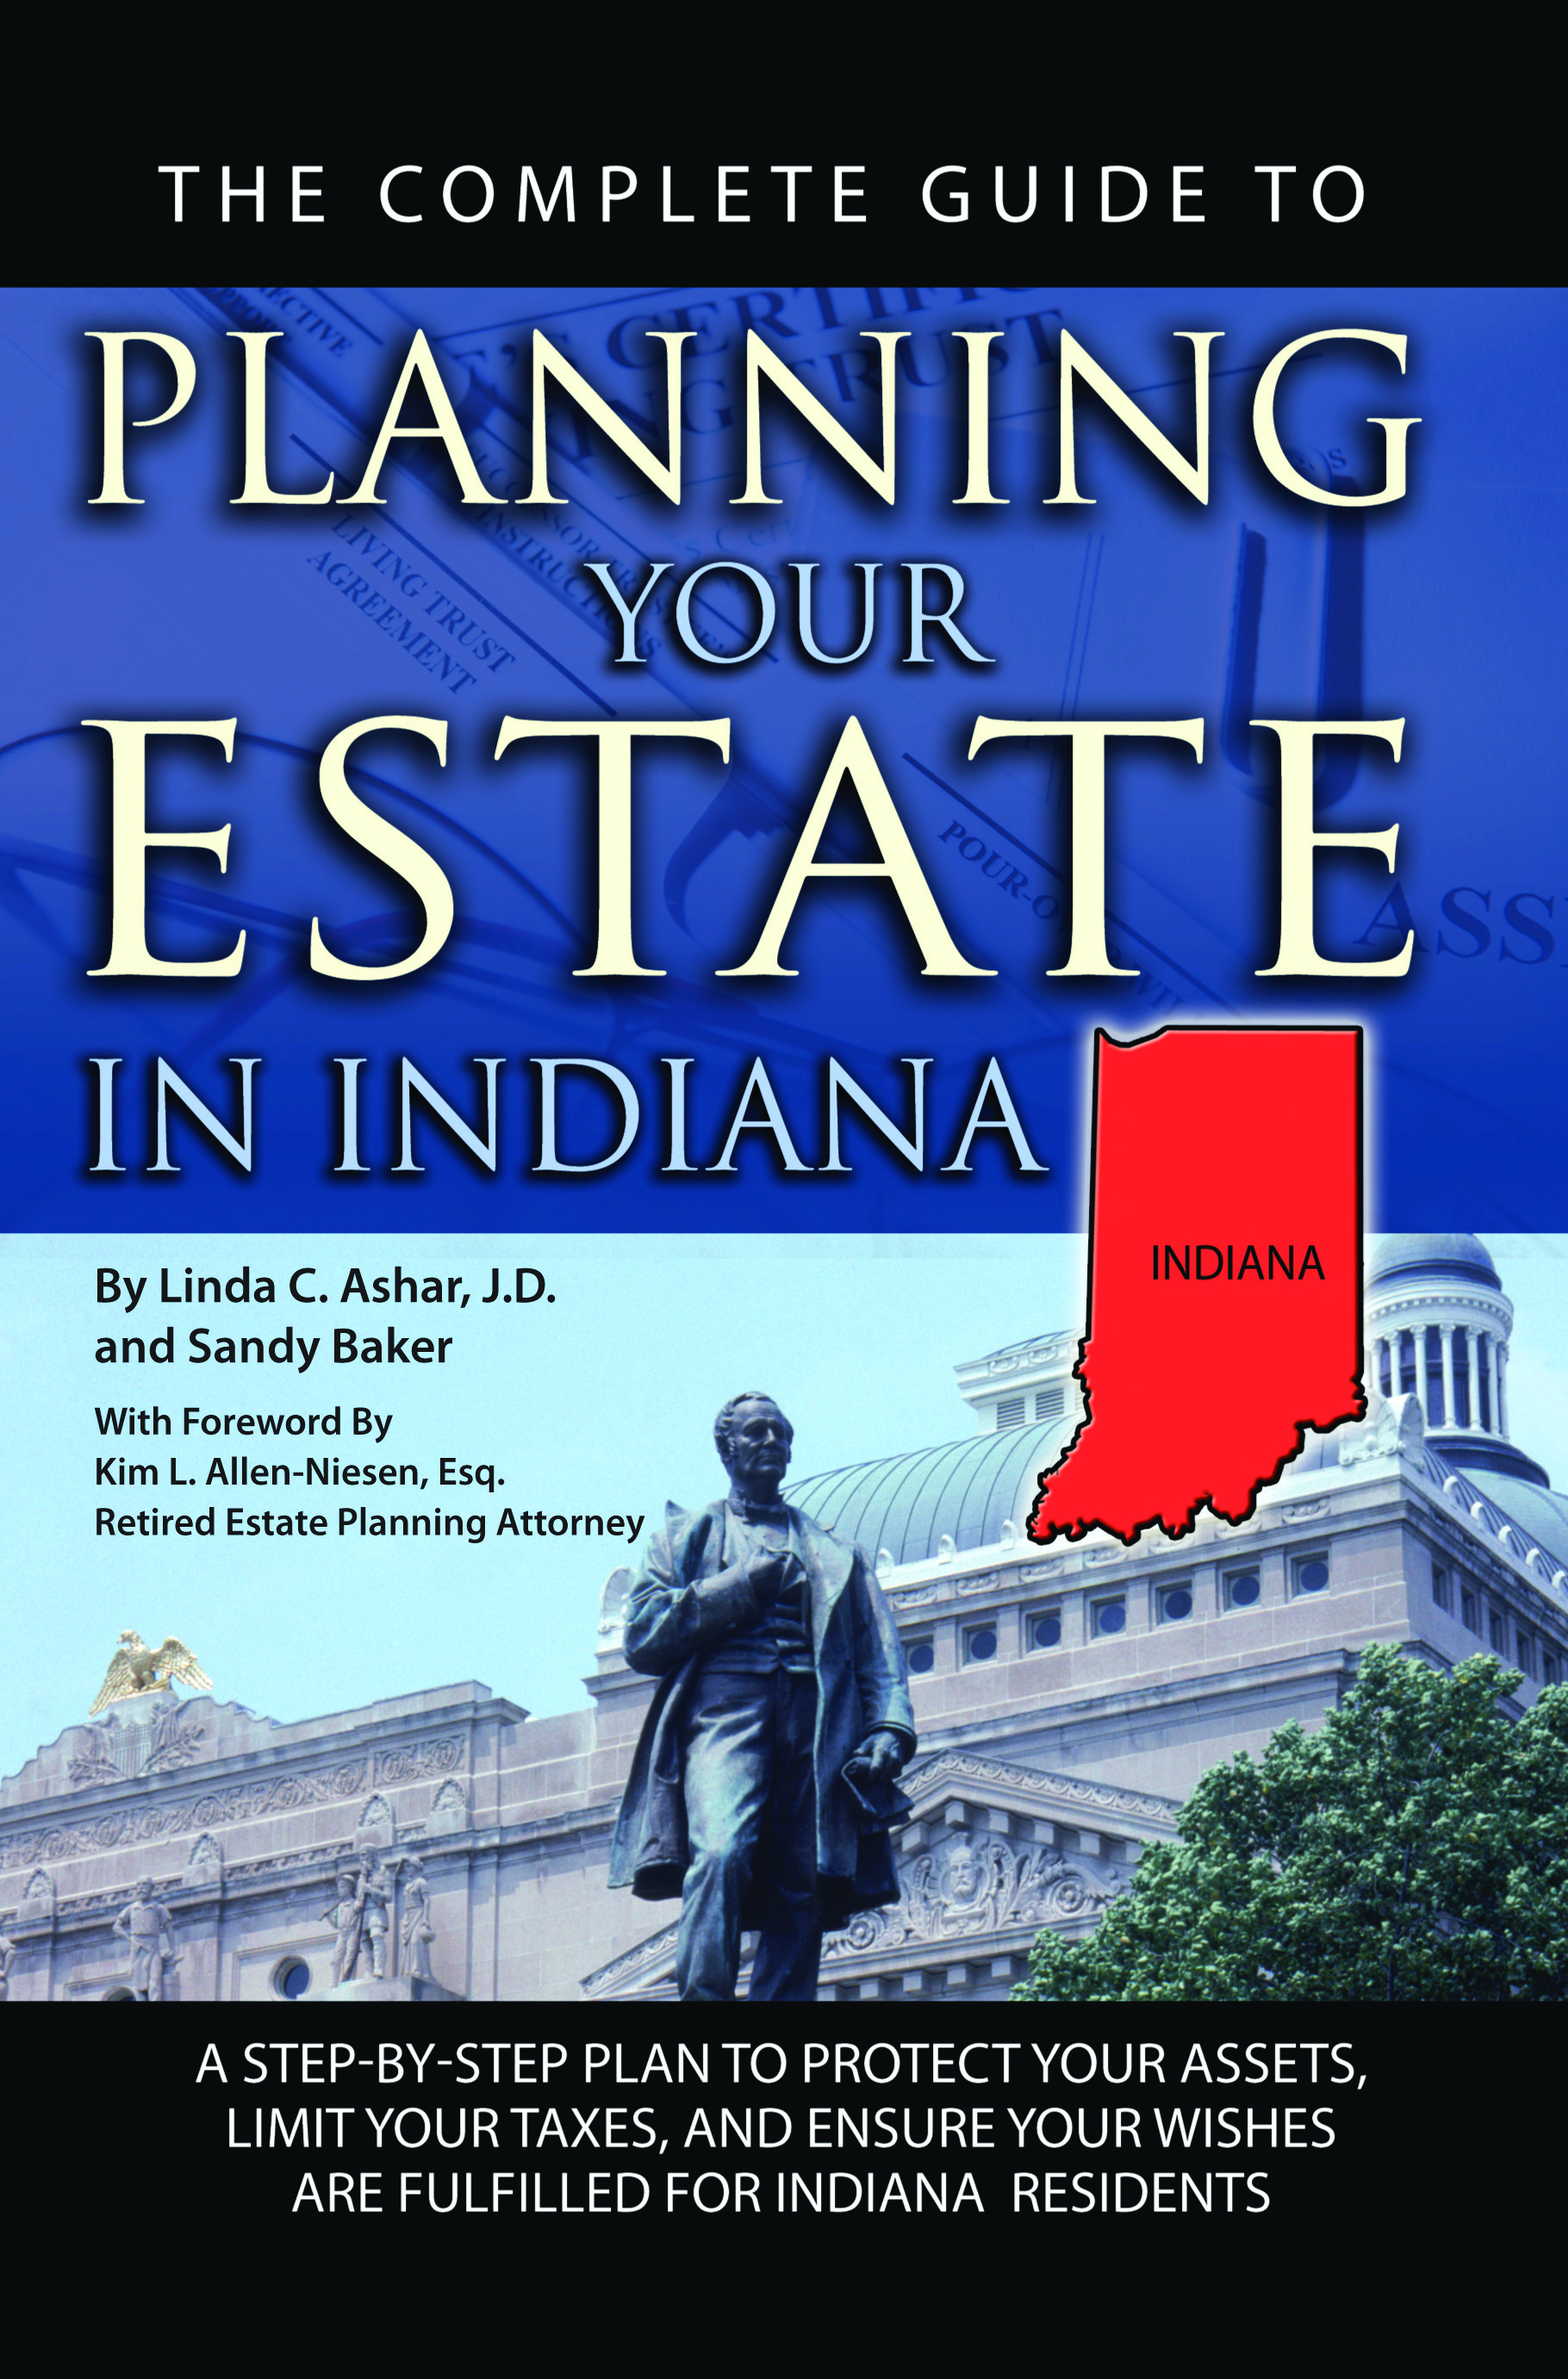 The Complete Guide to Planning Your Estate In Indiana  A Step-By-Step Plan to Protect Your Assets, Limit Your Taxes, and Ensure Your Wishes Are Fulfil